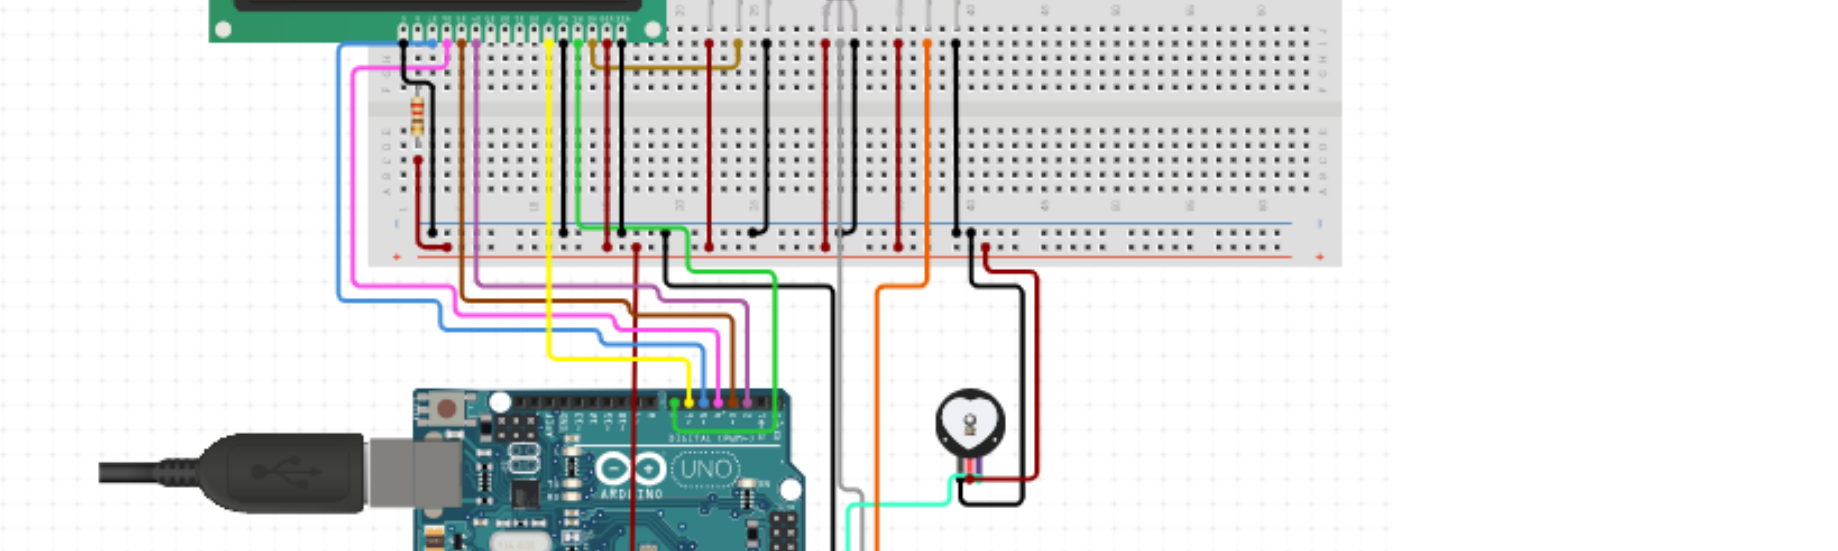 """HEARTBEAT AND BODY TEMPERATURE MONITORING USING ARDUINO"""""""